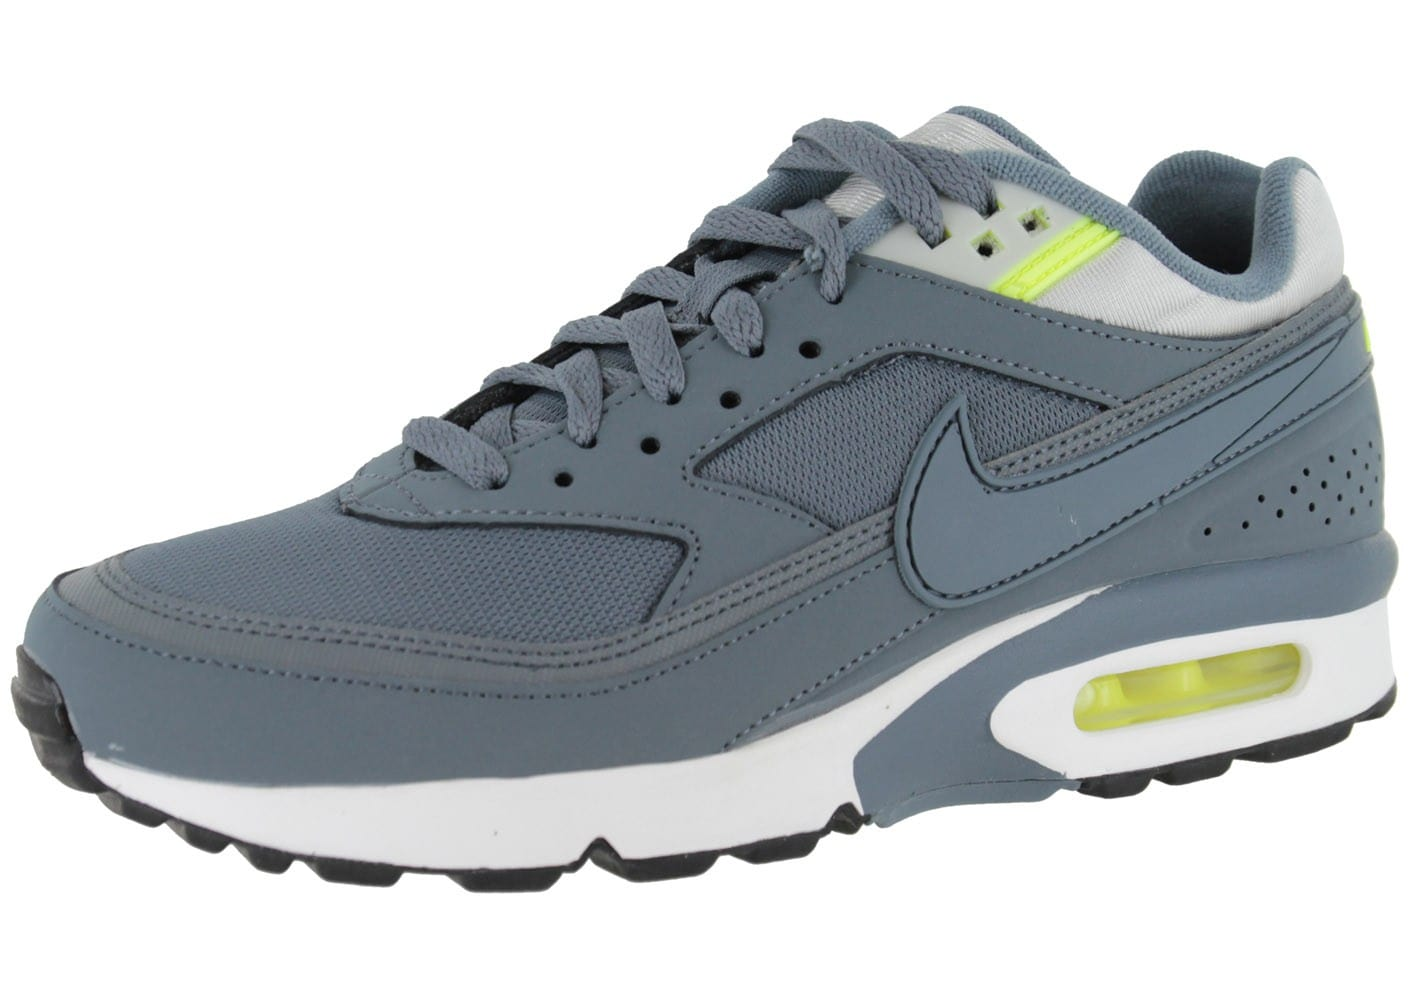 purchase cheap 5bad8 abf5b Cliquez pour zoomer Chaussures Nike Air Max Bw Anthracite vue extérieure ...